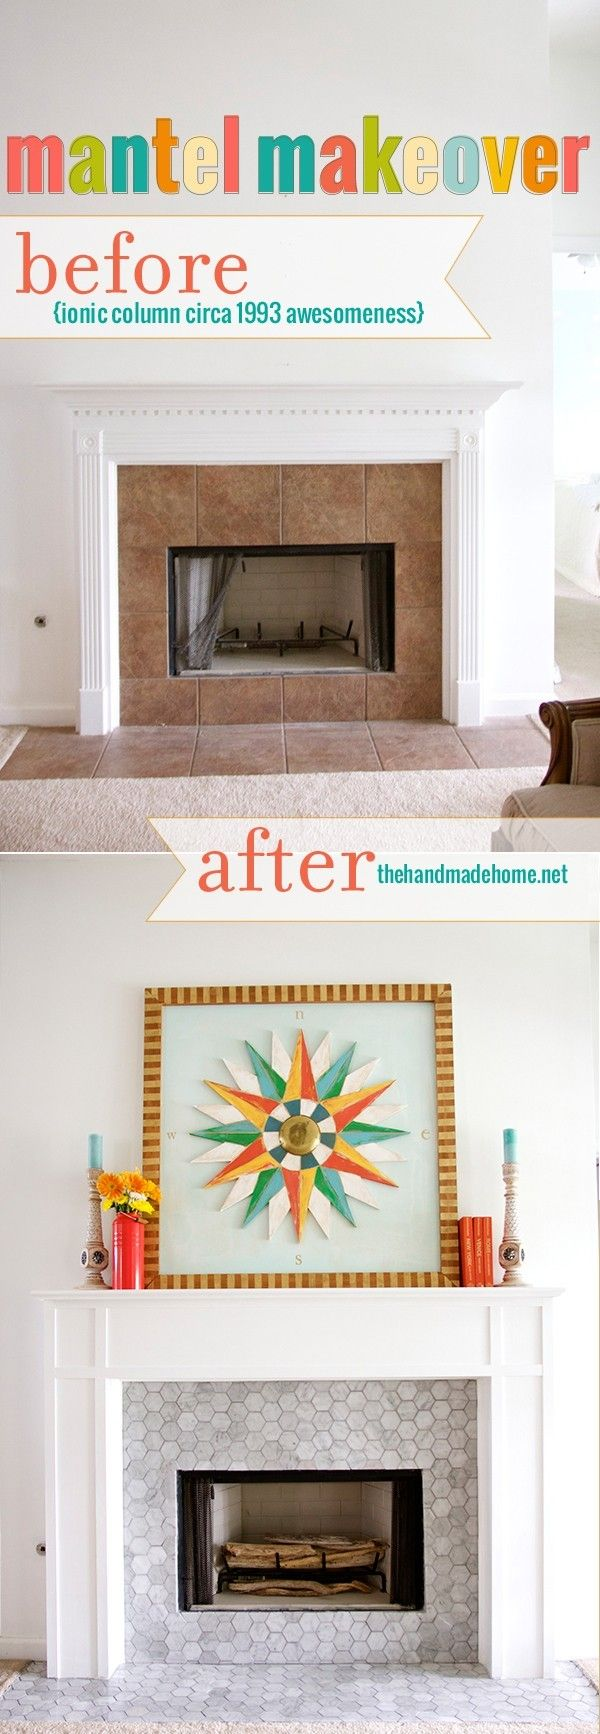 mantel_make-ver_before_and_after